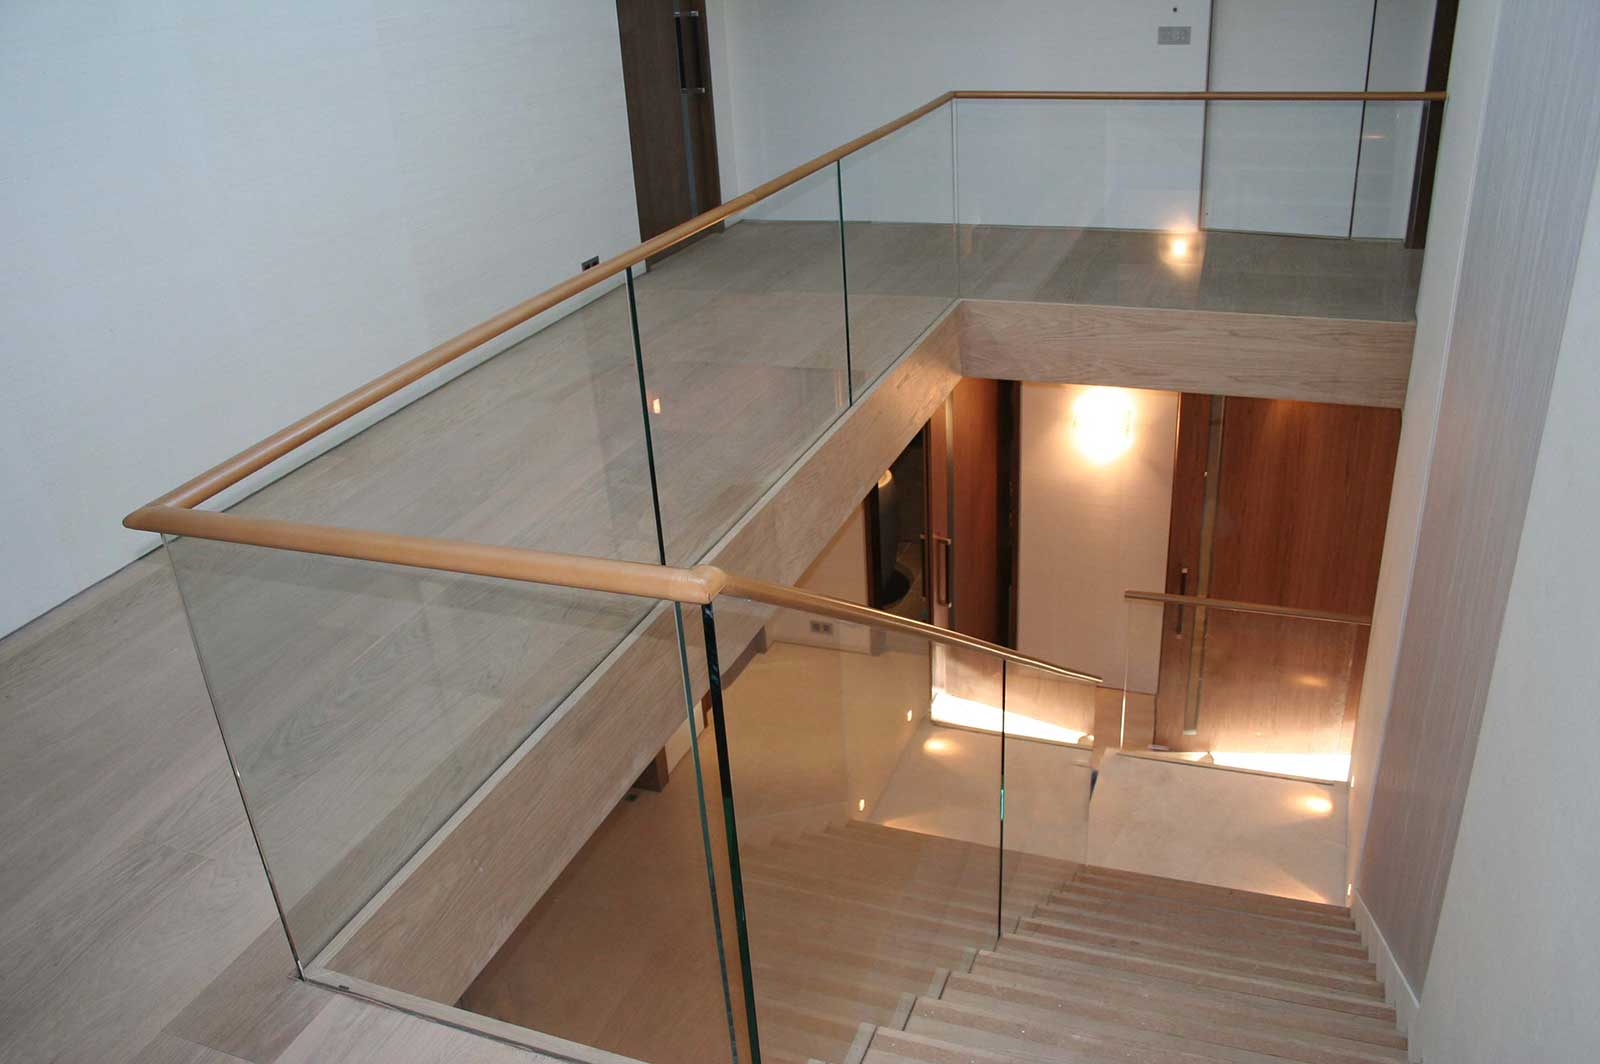 Glass Balustrades to Staircase & Landing